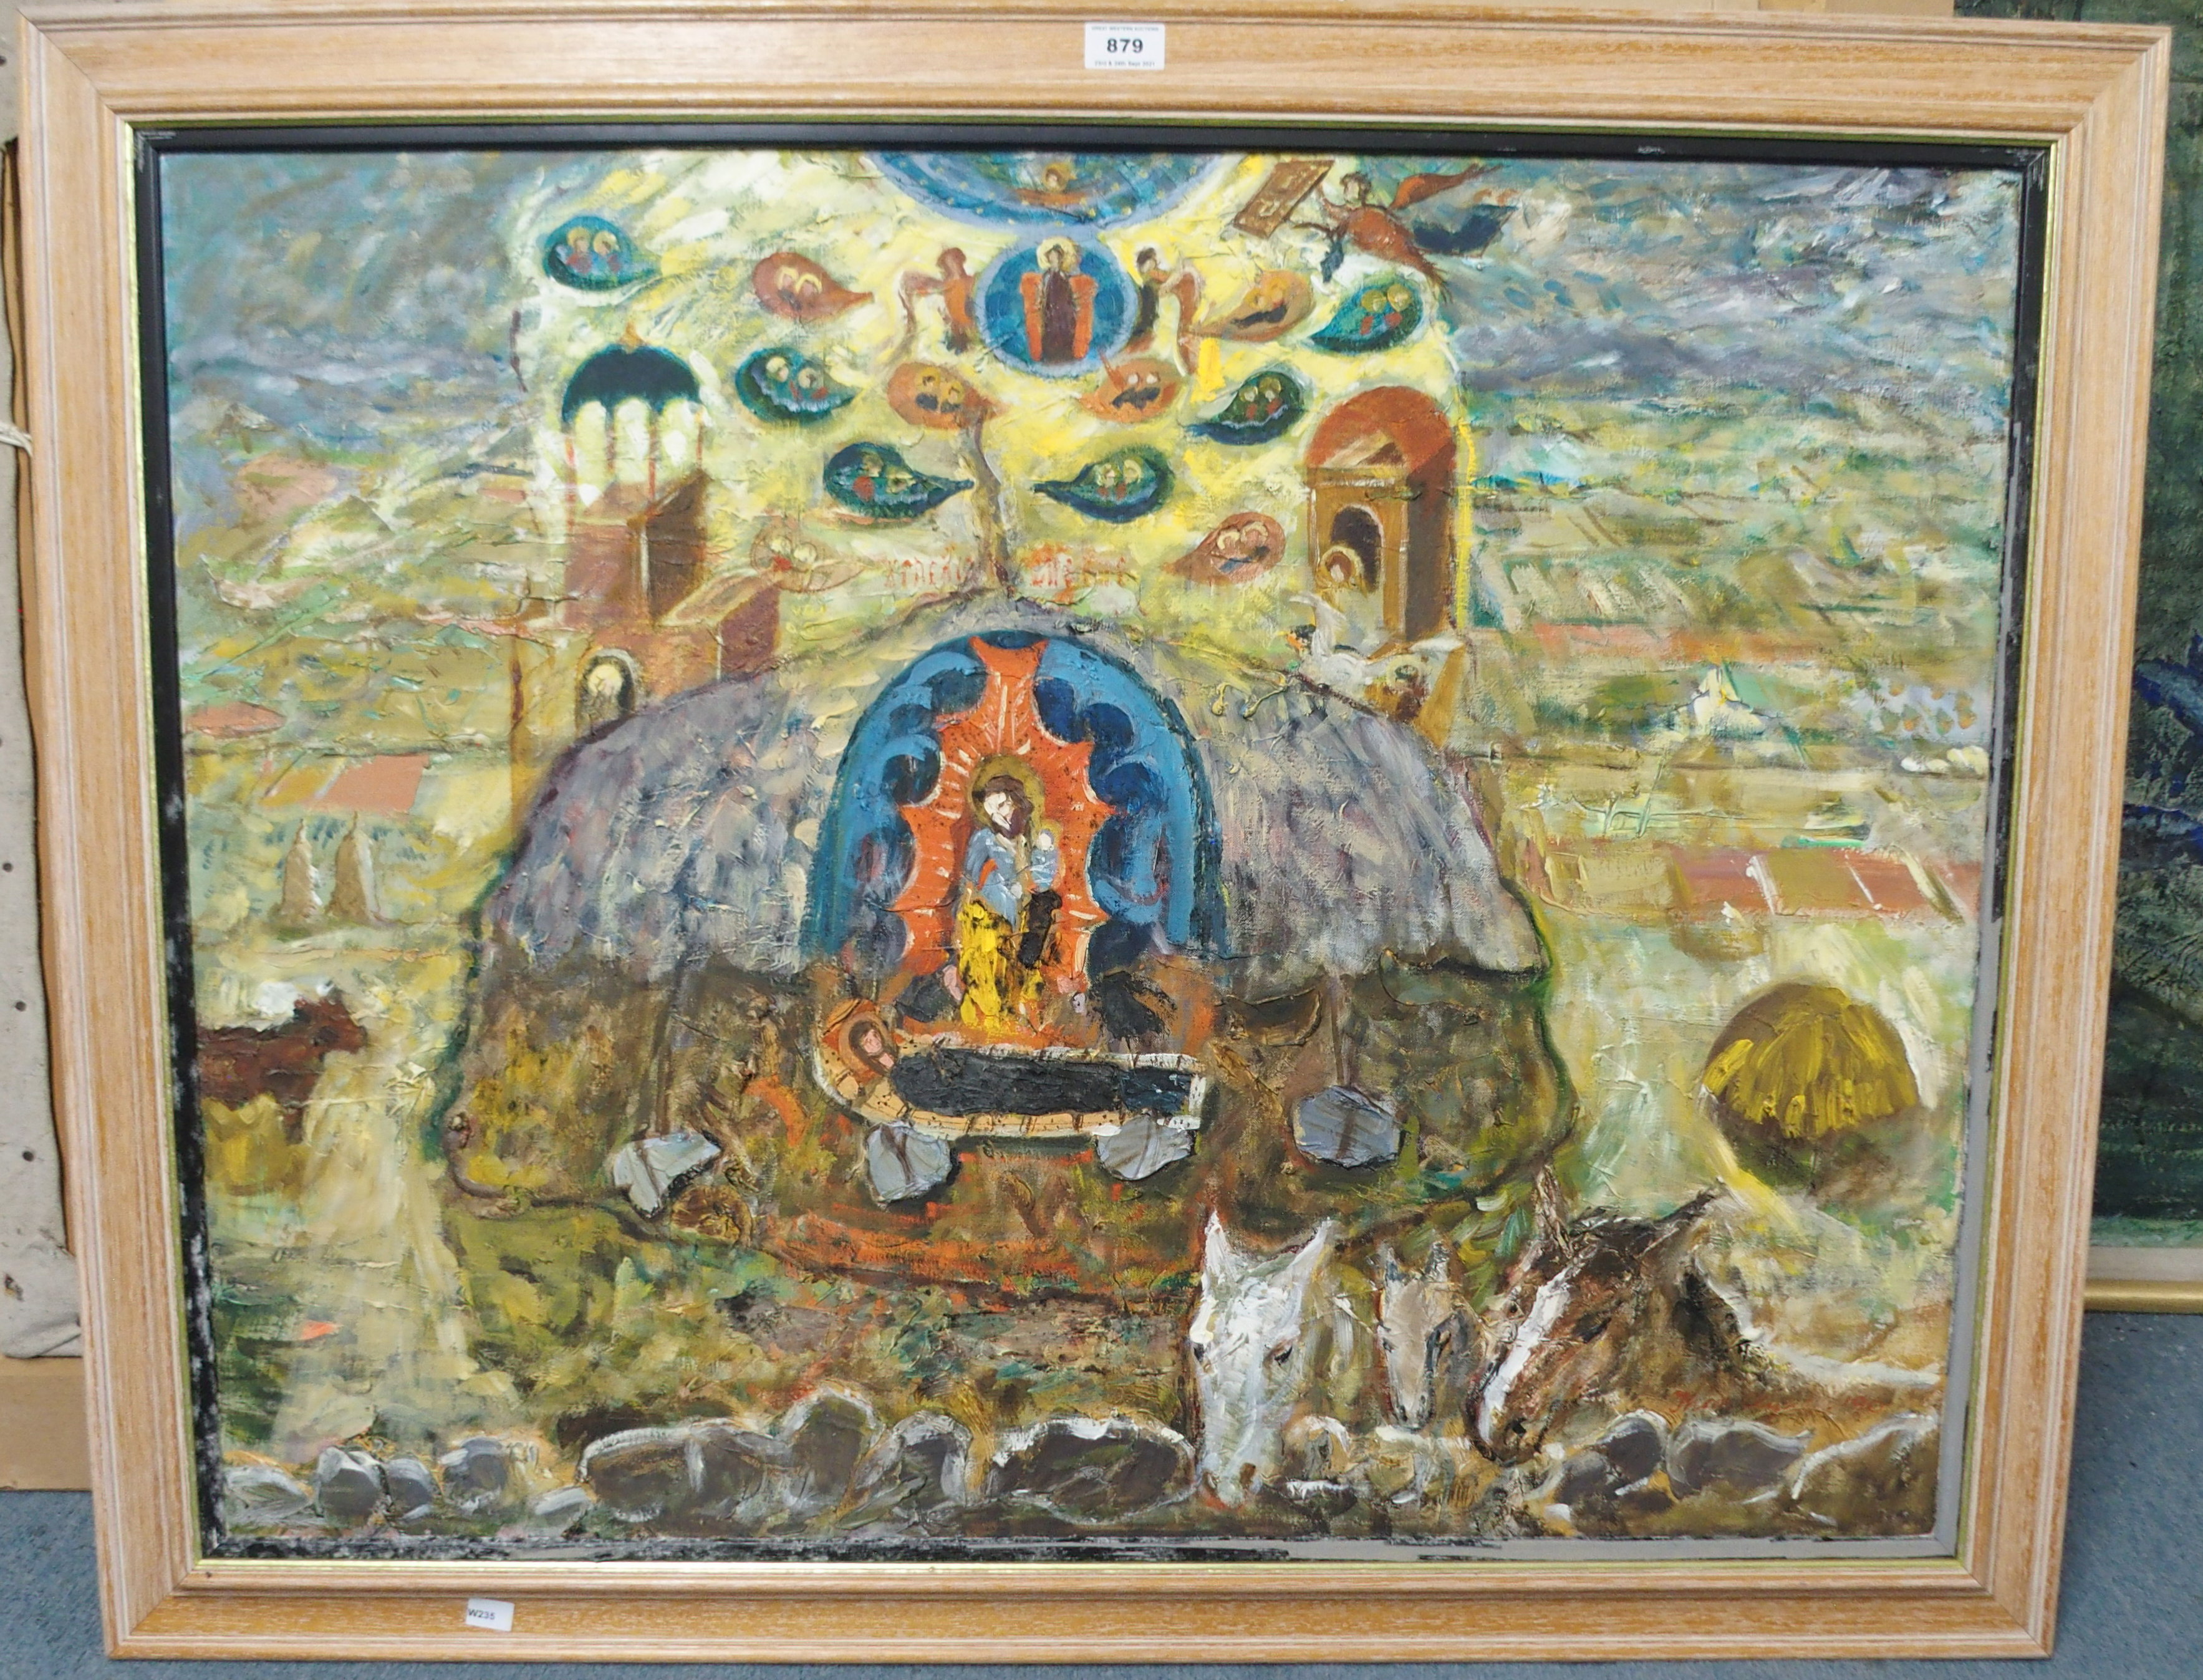 THORA CLYNE SSWA (SCOTTISH 1937-2020) FIELD OF VISION Oil on canvas, signed and dated (19)90, 71 x - Image 2 of 6